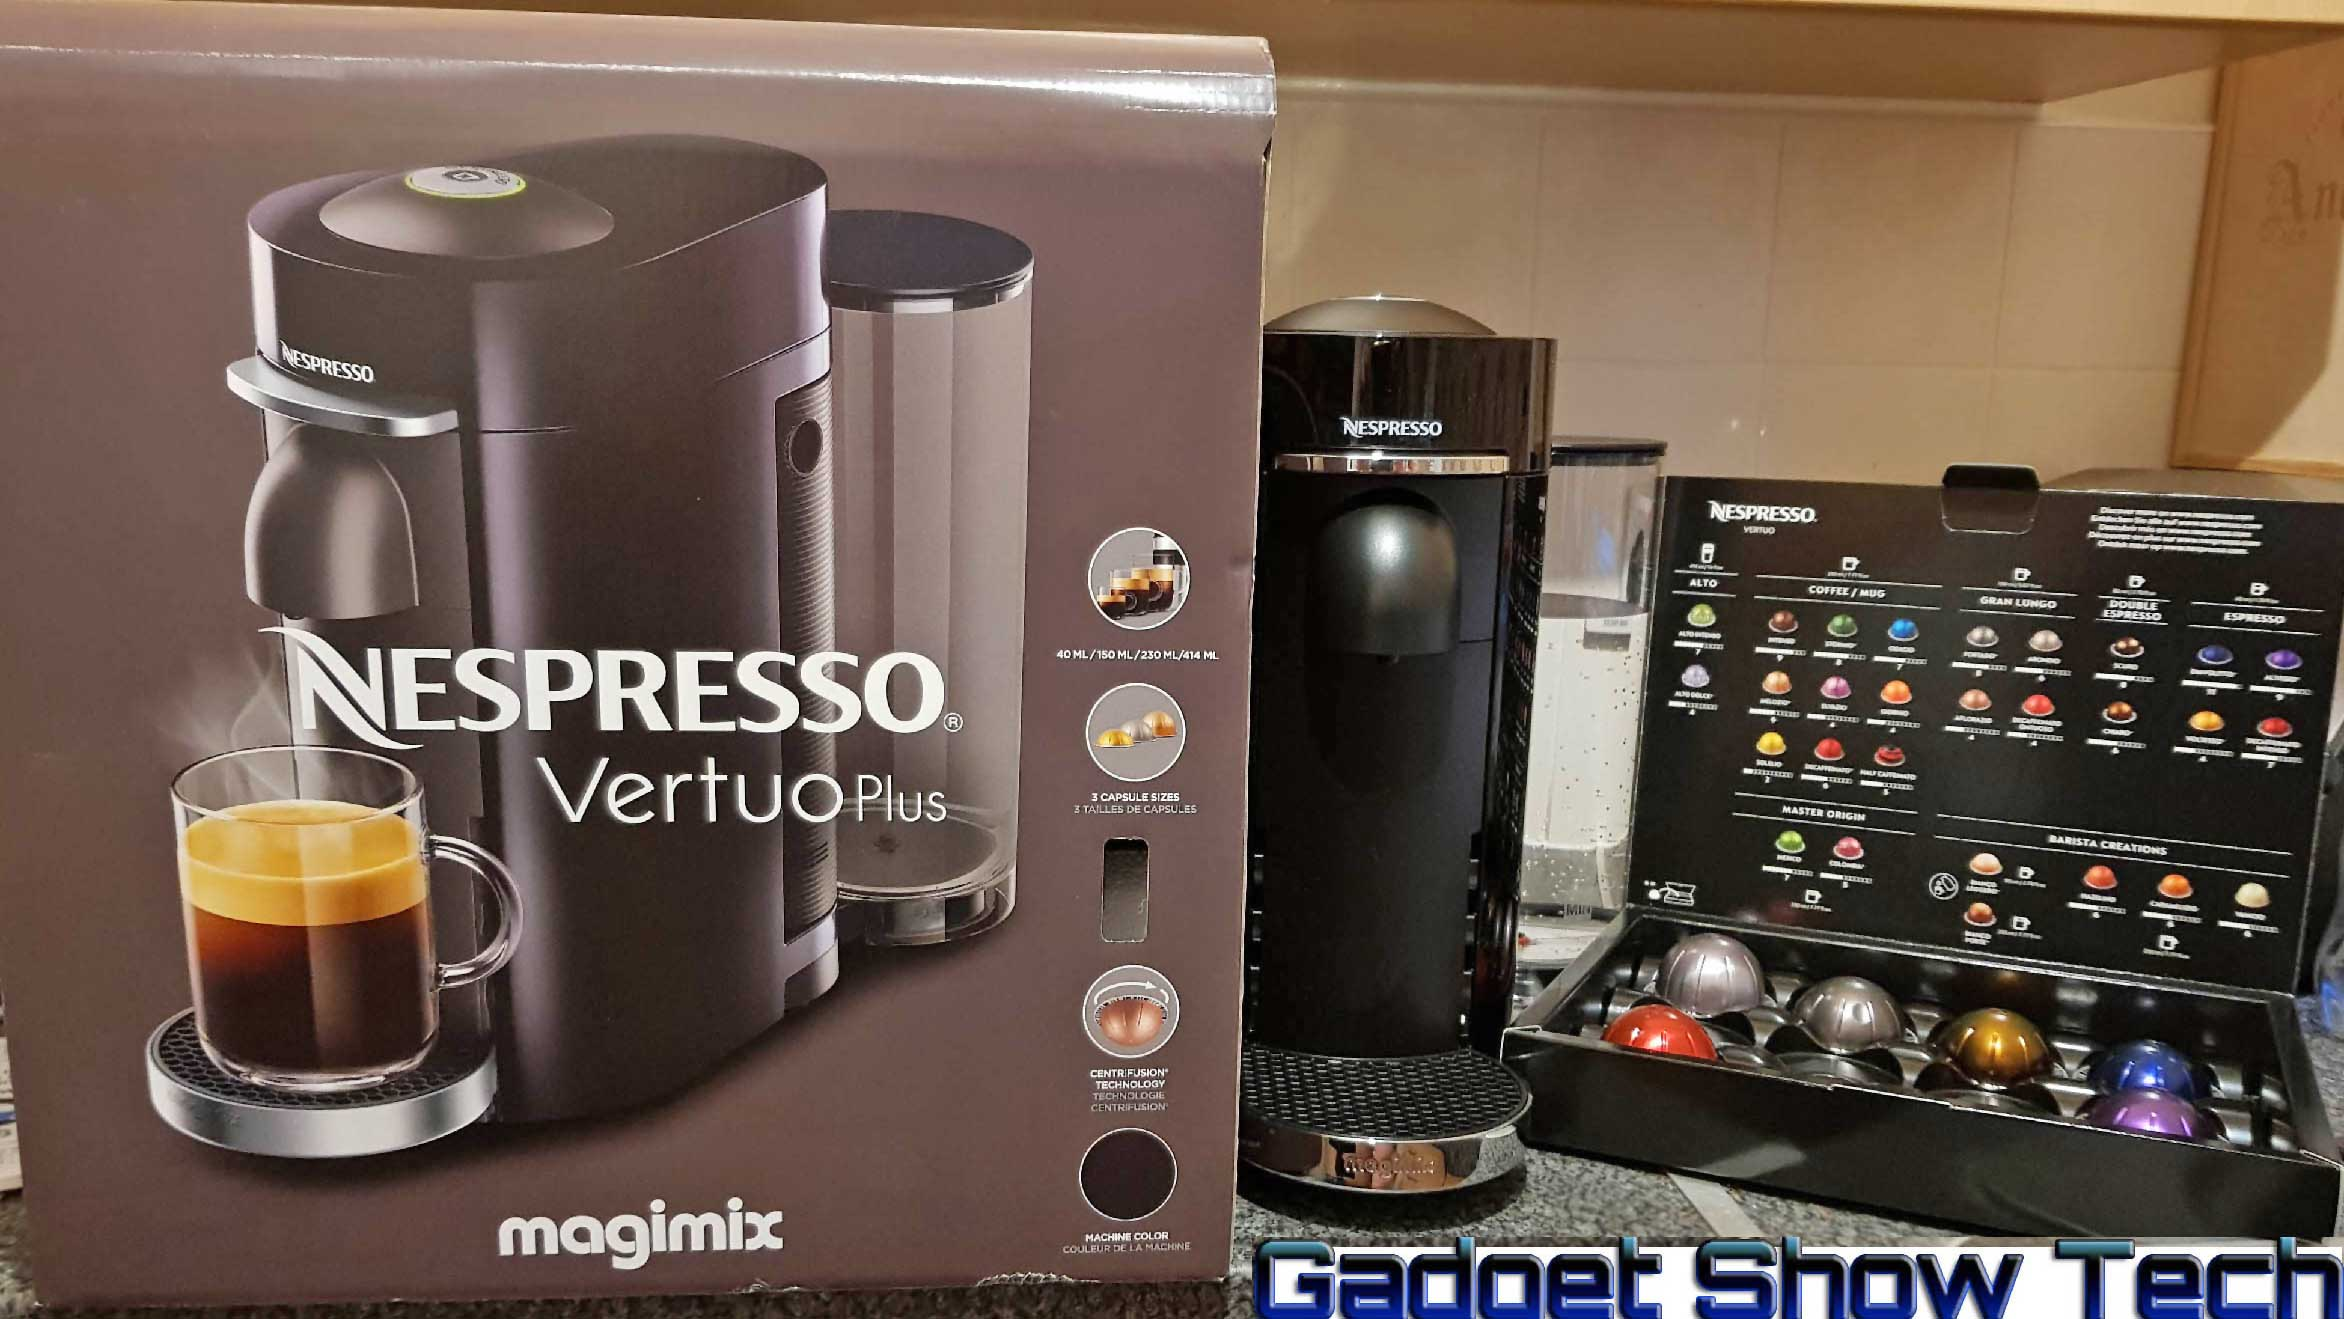 Home Appliance, kitchen, coffee machine, nespresso magimix, video, review, testing, technology, 2020, nespresso,magimix,VERTUO PLUS,CENTRIFUSION,home appliance,drinks,coffee recipe,coffee maker,nespresso machine,nespresso vertuo,nespresso vertuoplus,vertuoplus,vertuo coffee machine,unboxing,how to,setup,nespresso review,Vertuo Capsules,